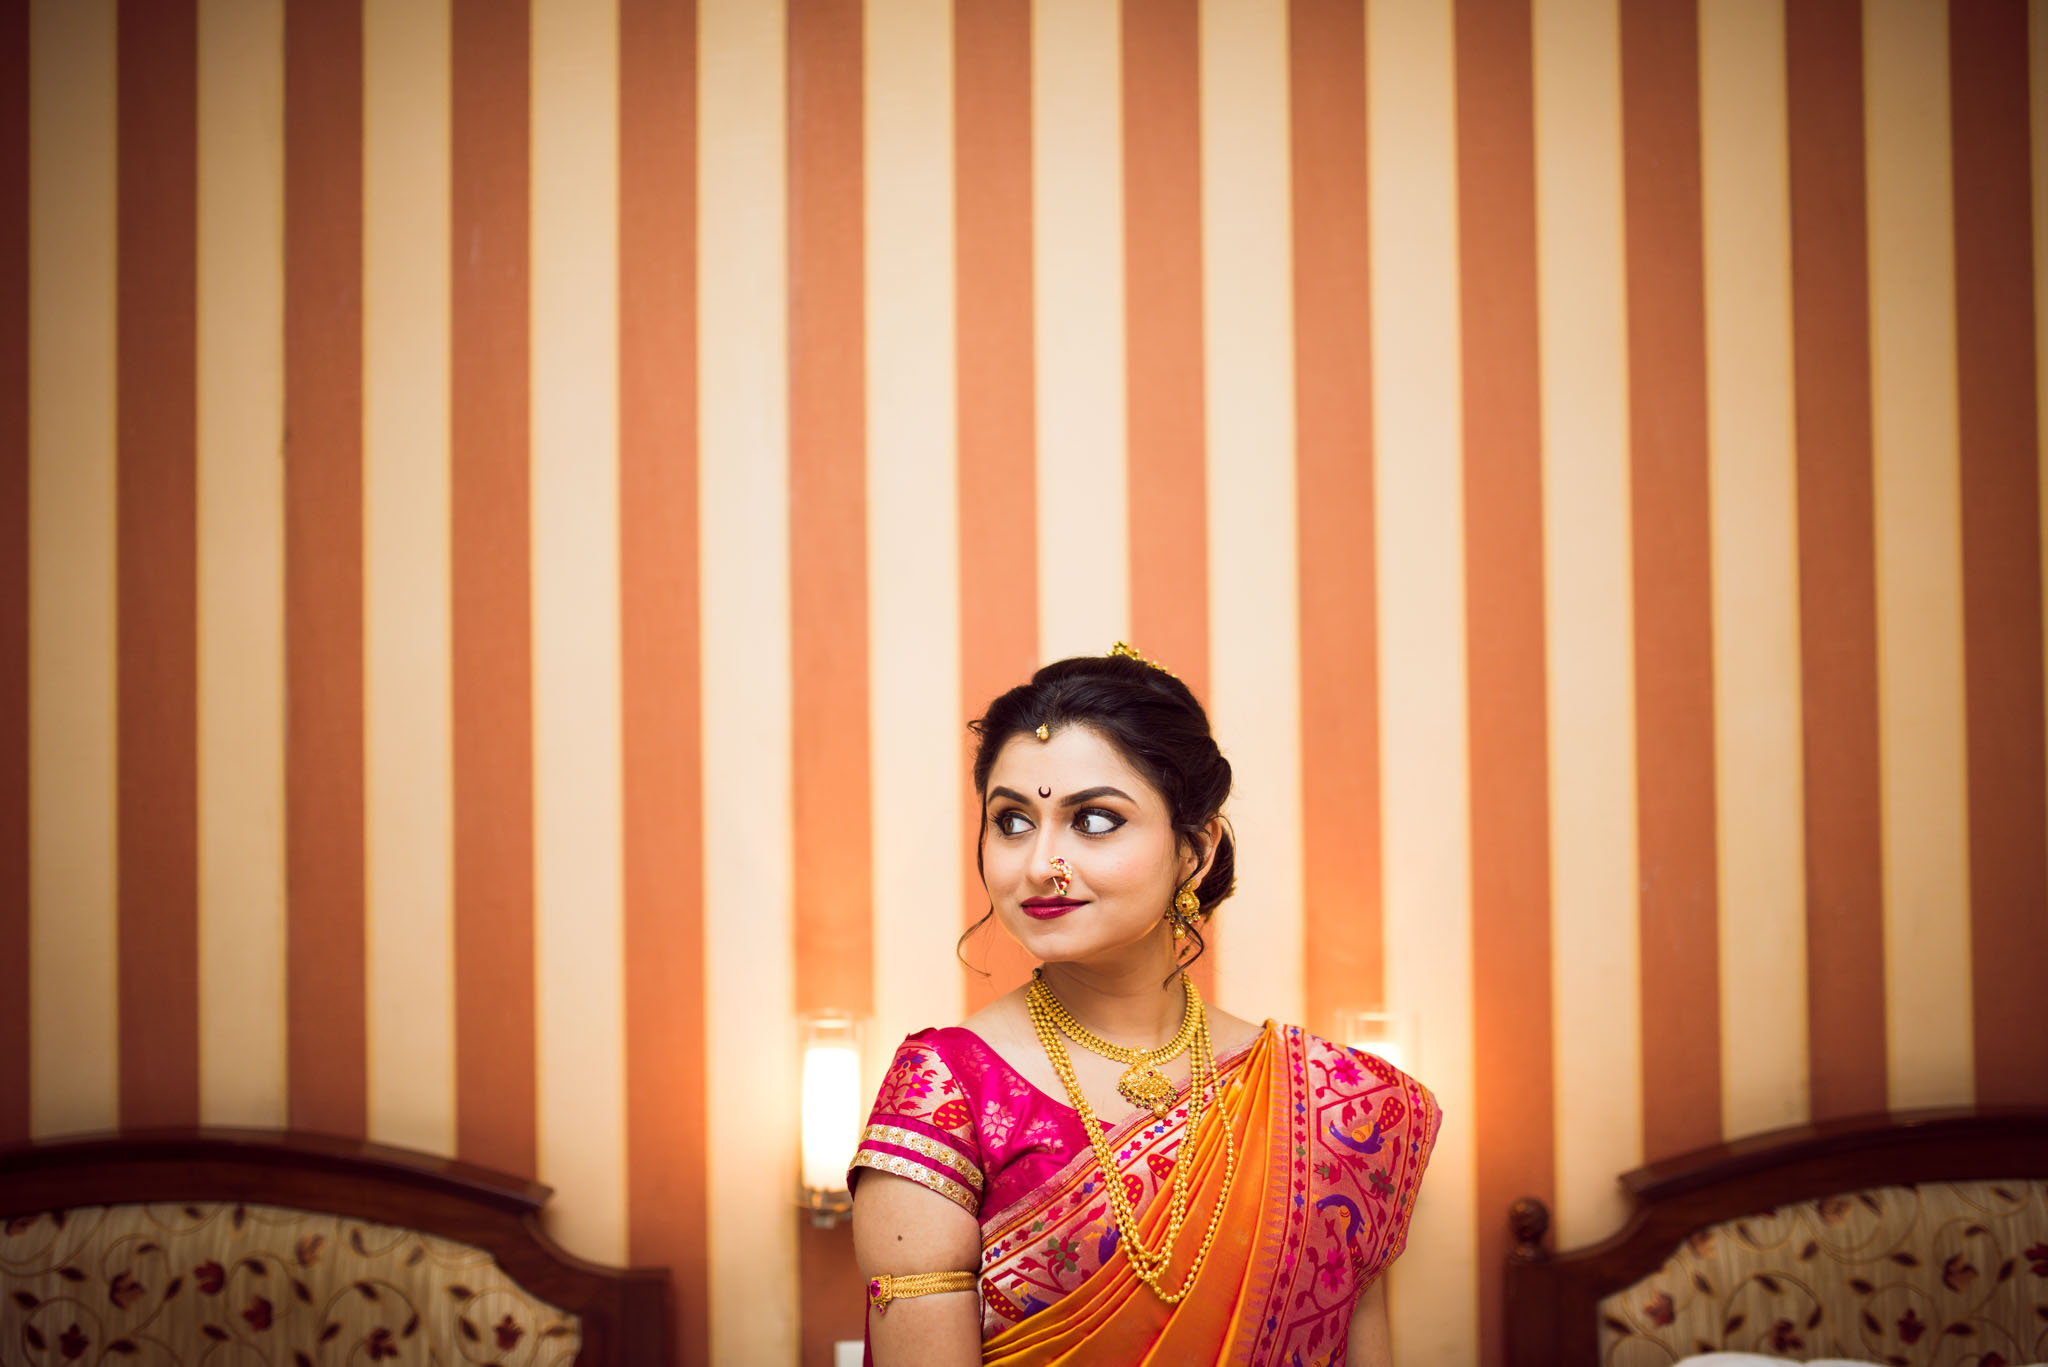 Makeup-room-bride-lehenga-whatknot-photography-86